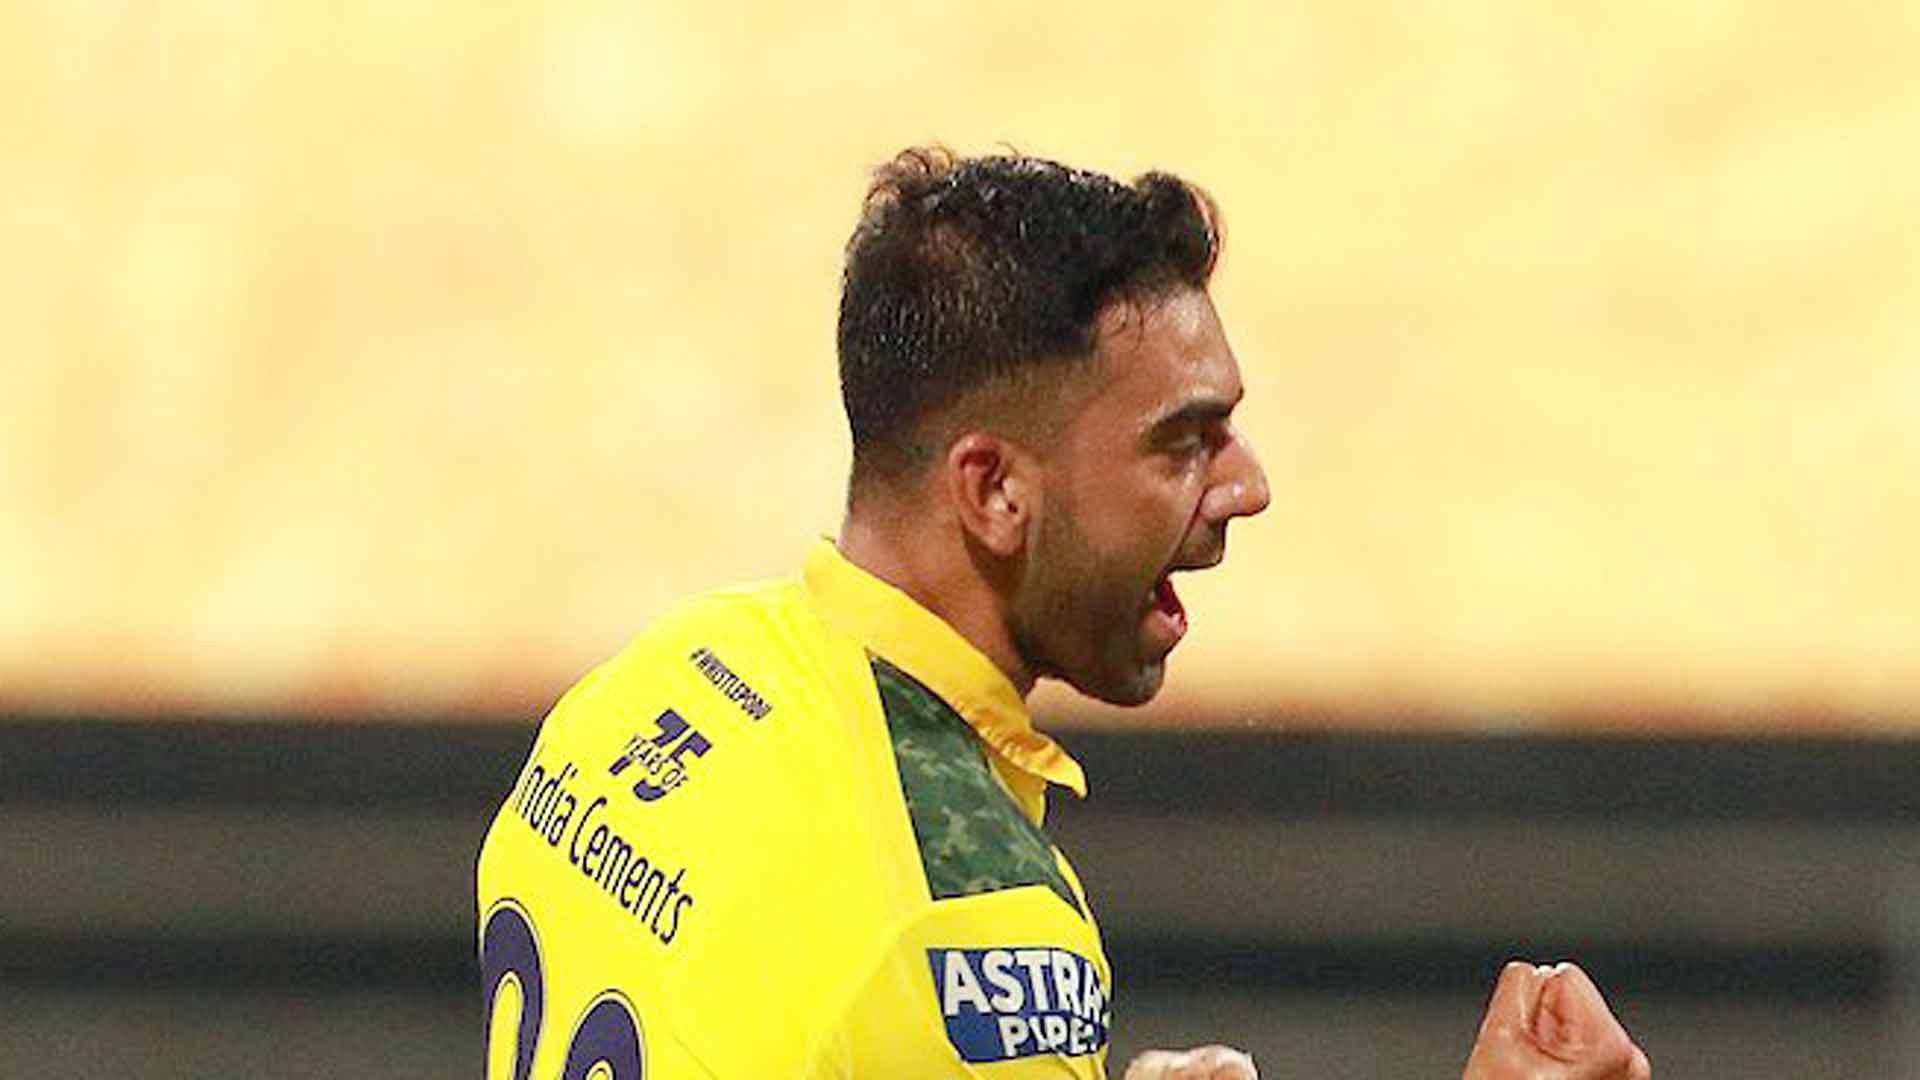 IPL 2021, Match 8: Chennai Super Kings vs Punjab Kings  | The Times of India